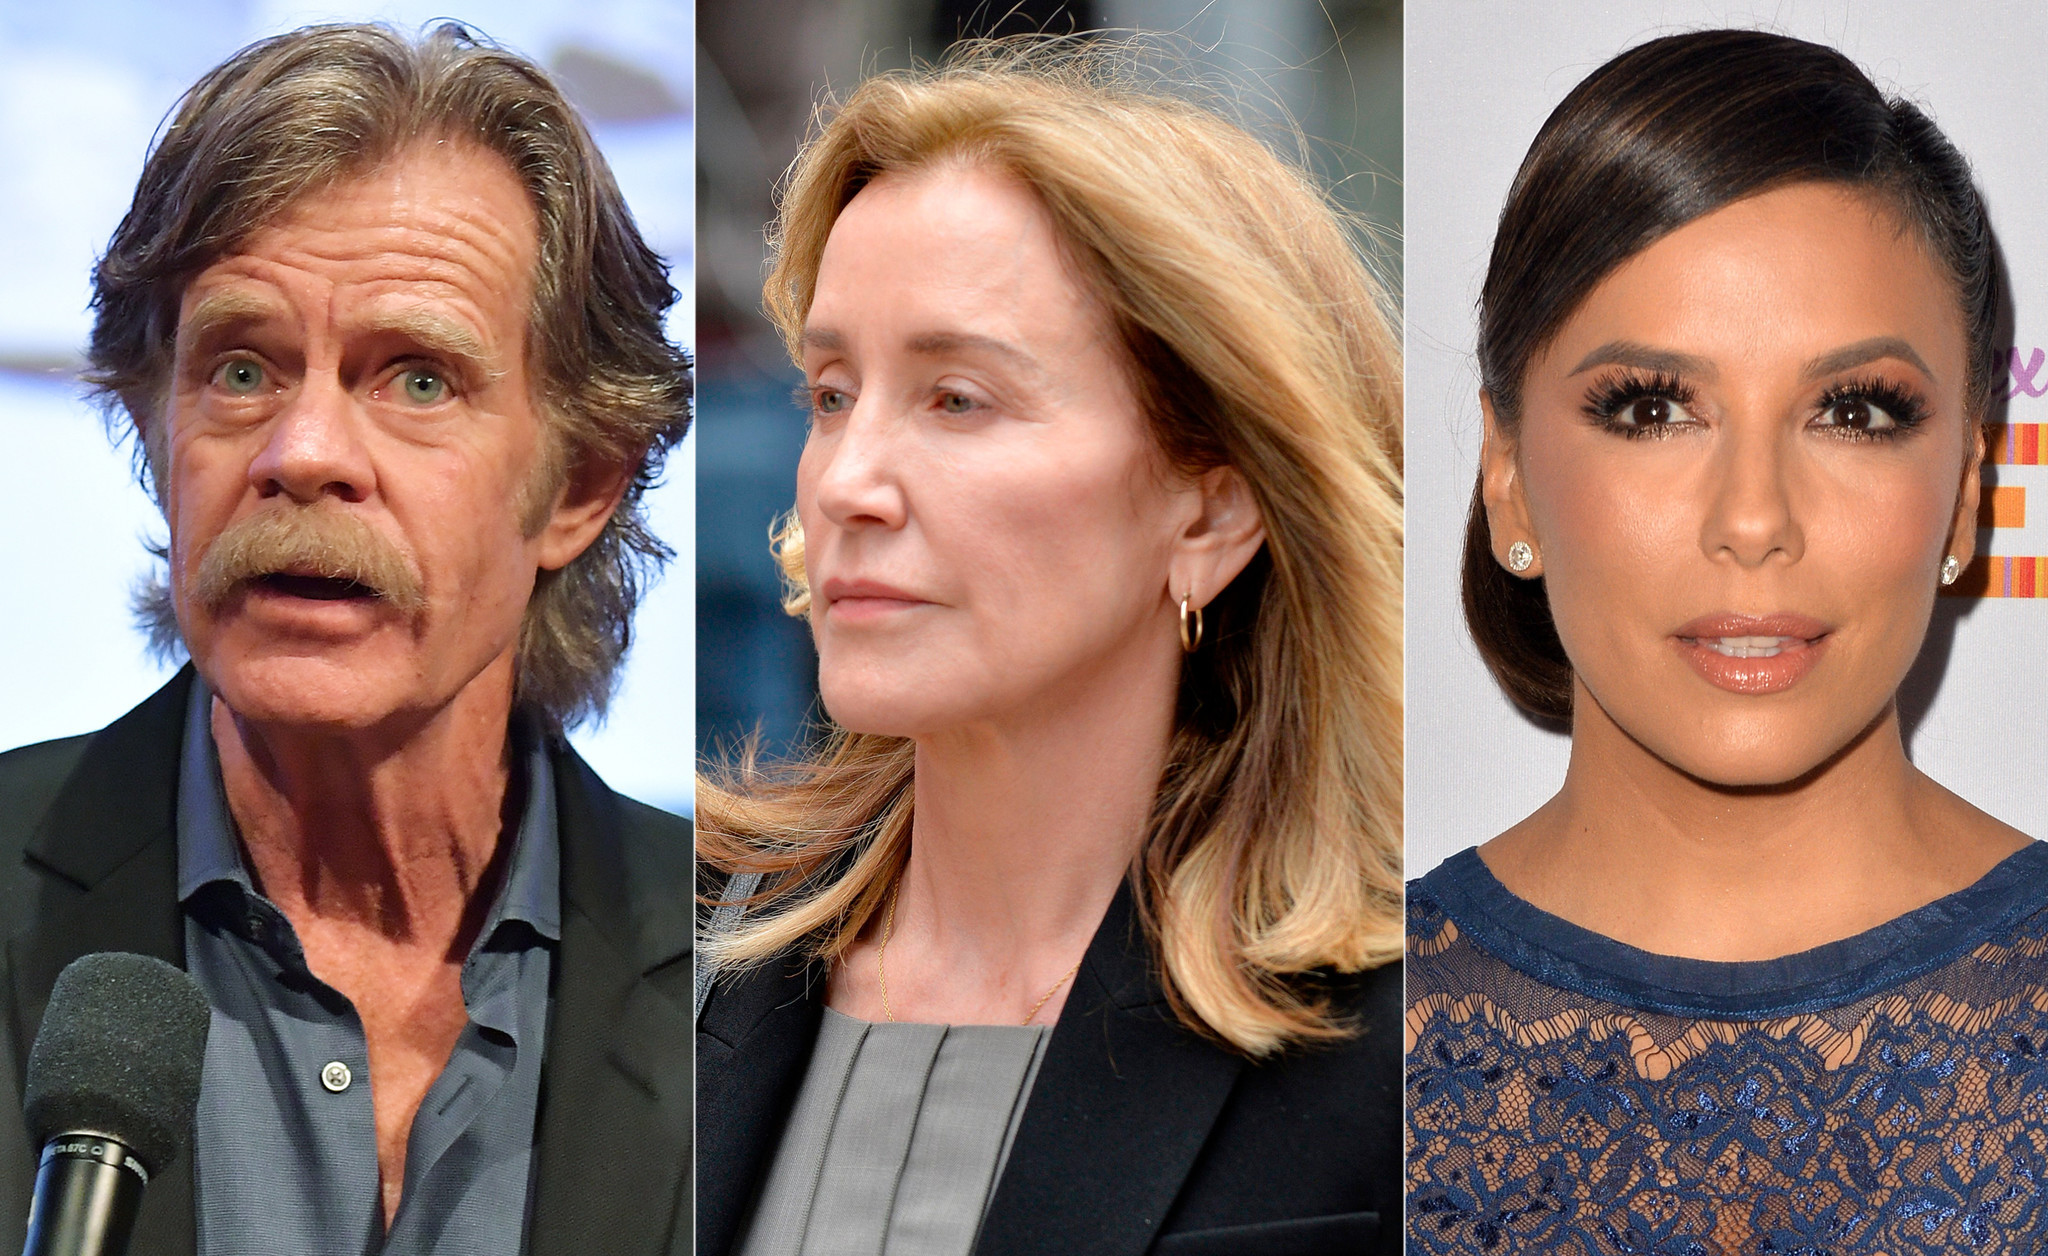 Eva Longoria and William H. Macy plead for judge to spare Felicity Huffman jail time